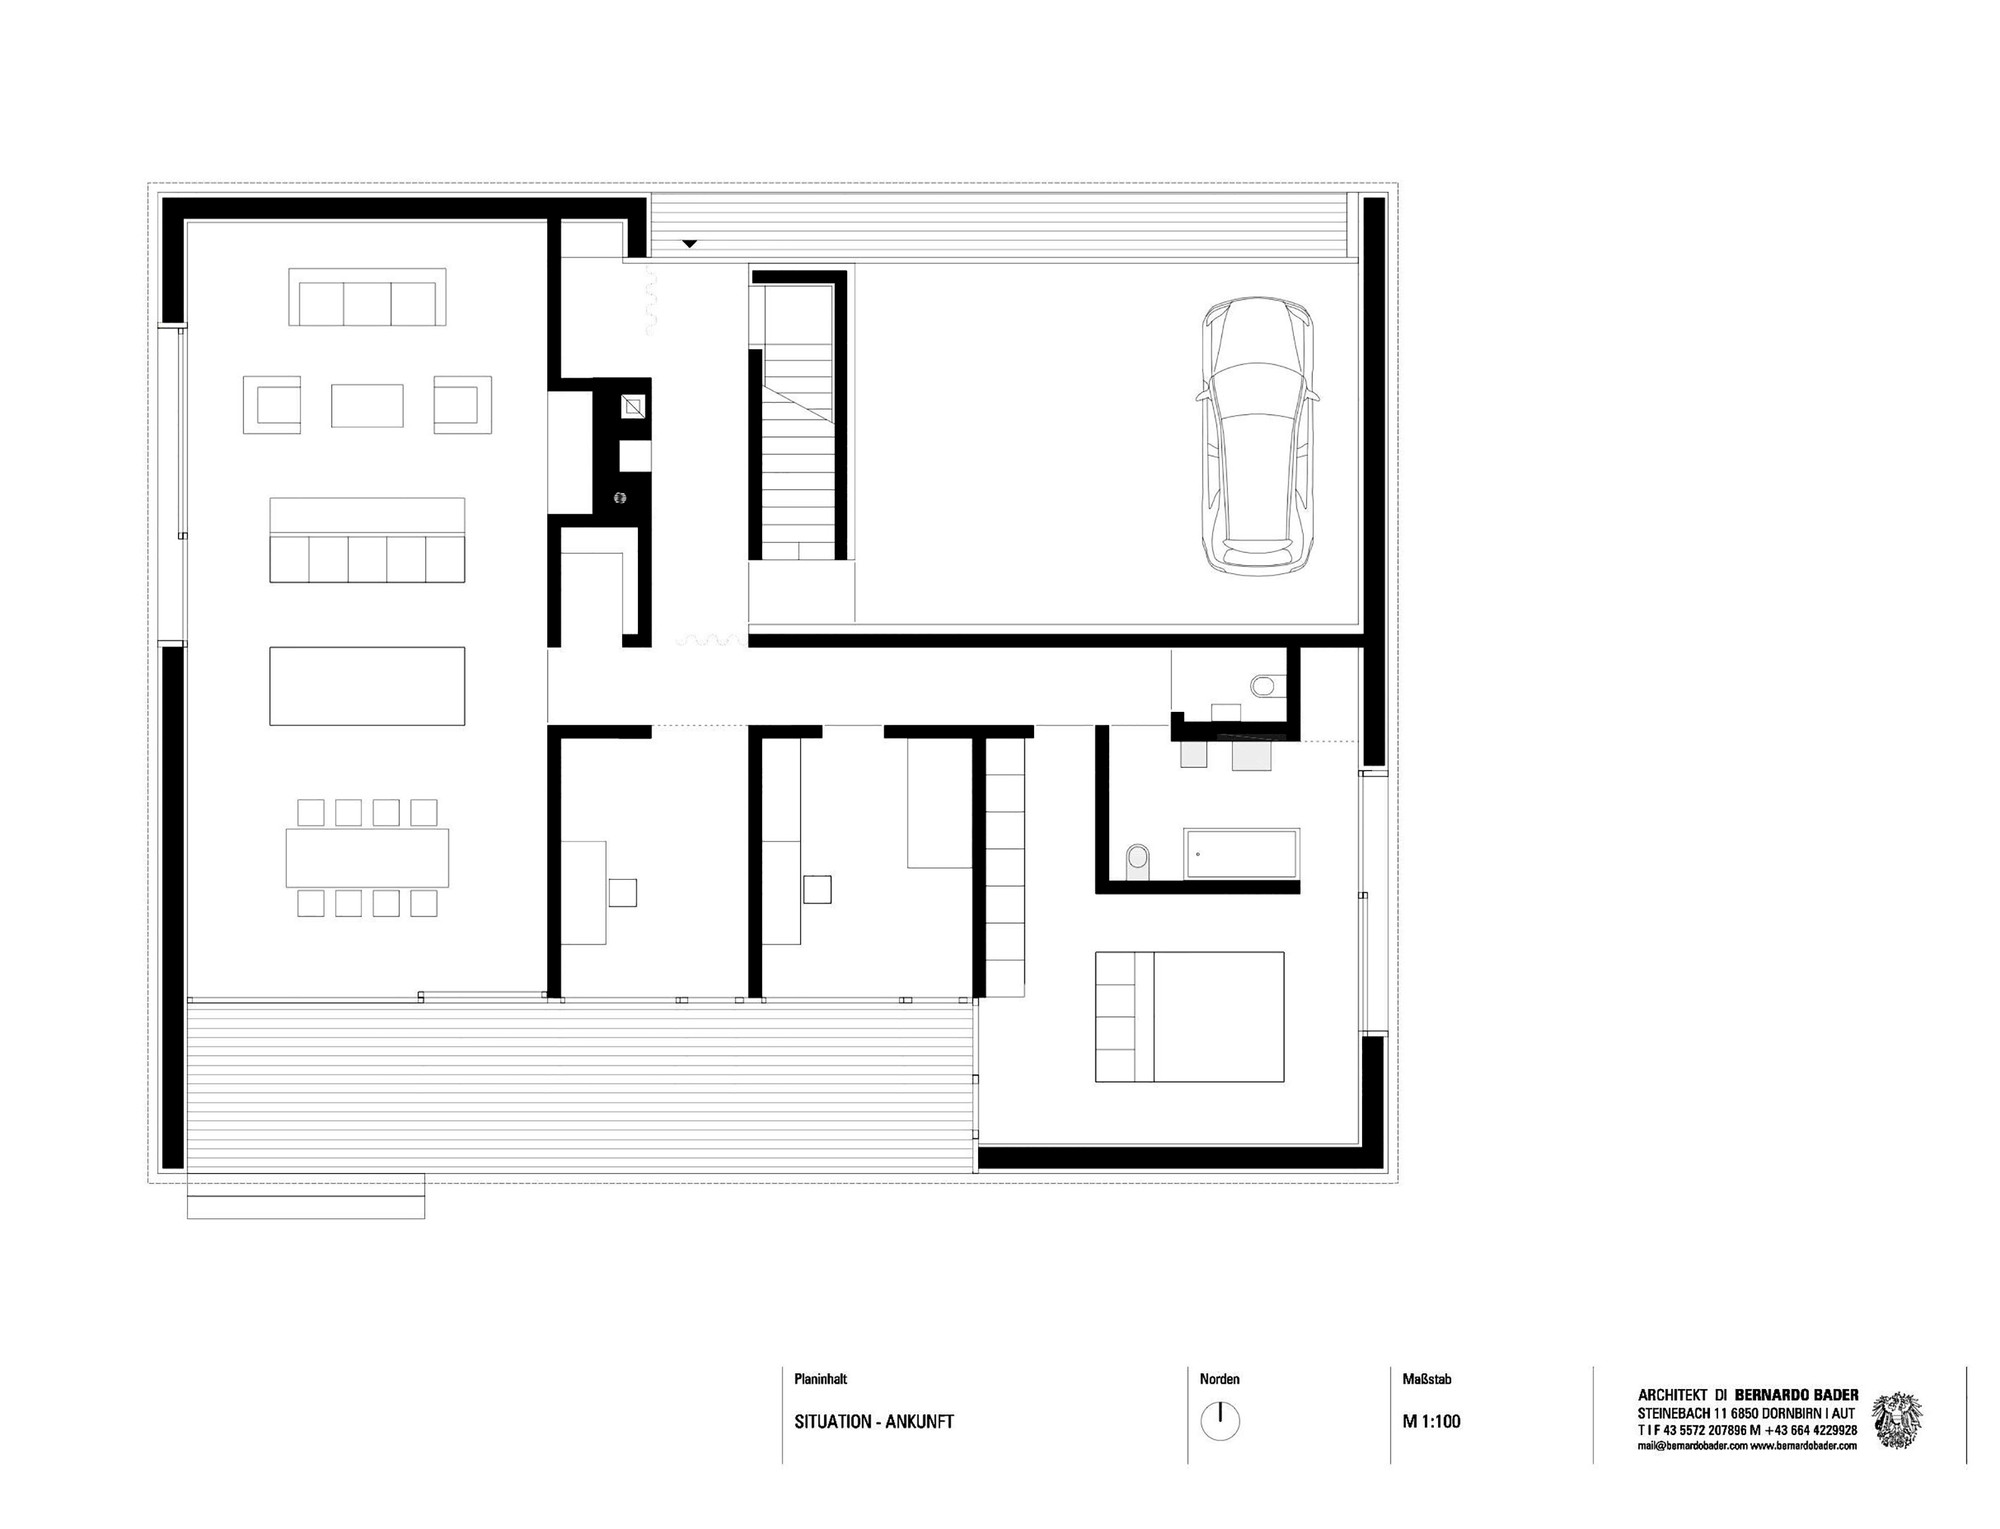 Haus kaltschmieden bernardo bader architects archdaily for Haus plan